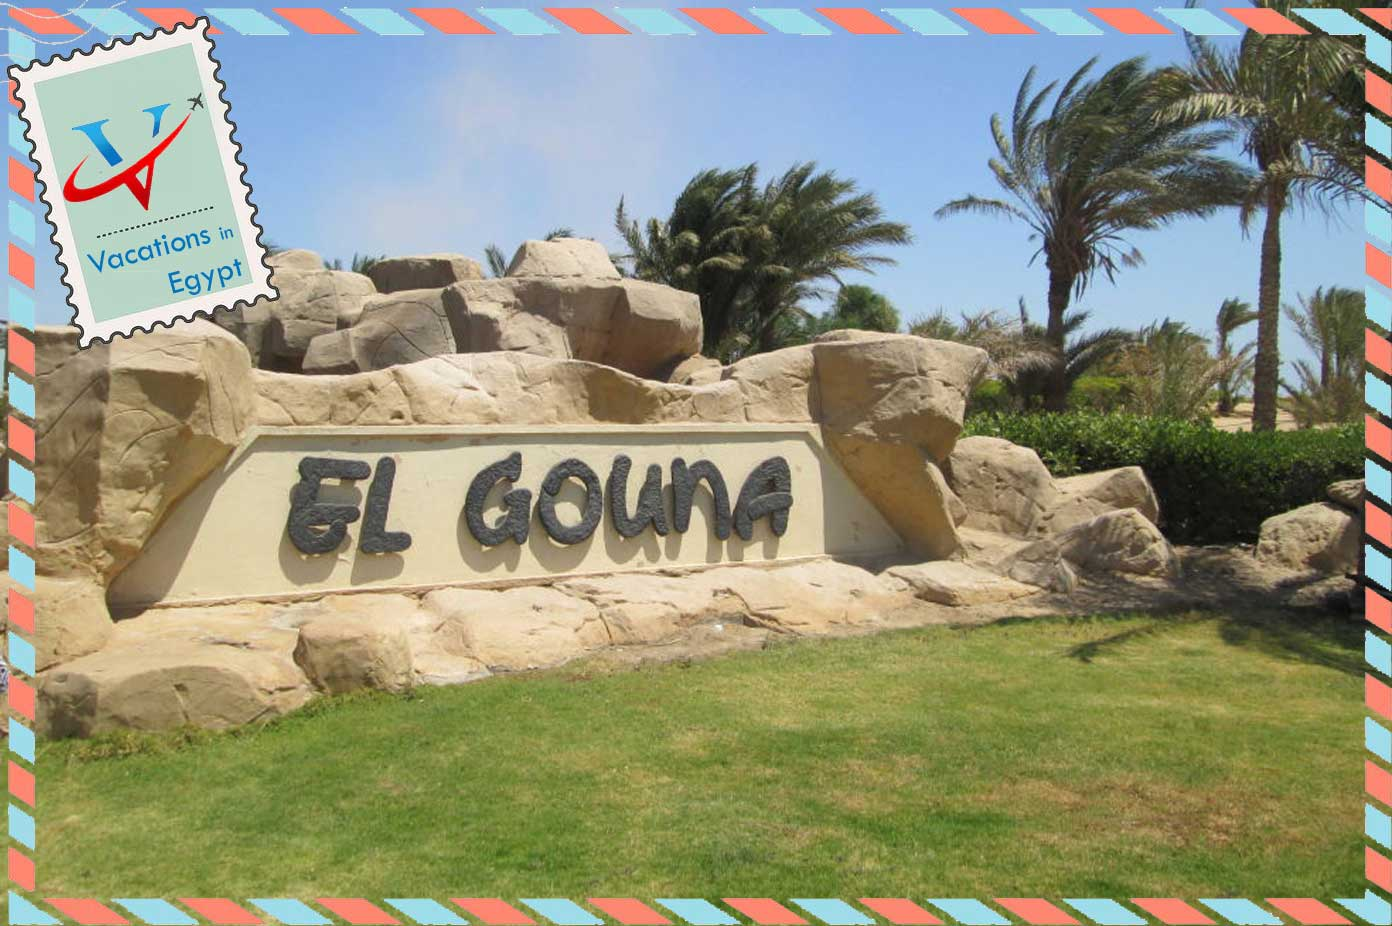 el gouna vacation packages